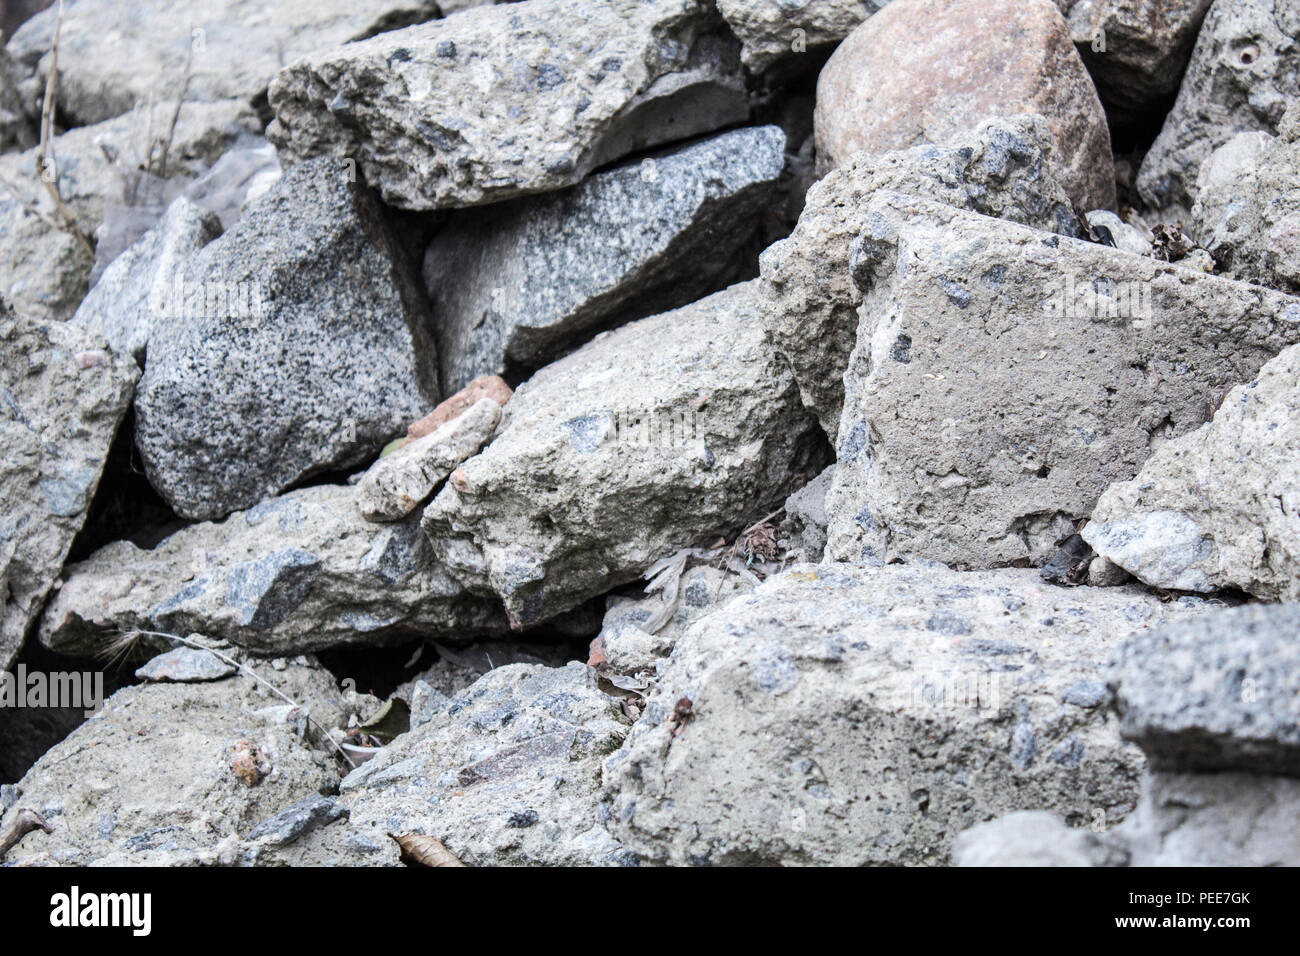 A pile of stones. Limestone, boulders, large stones - Stock Image